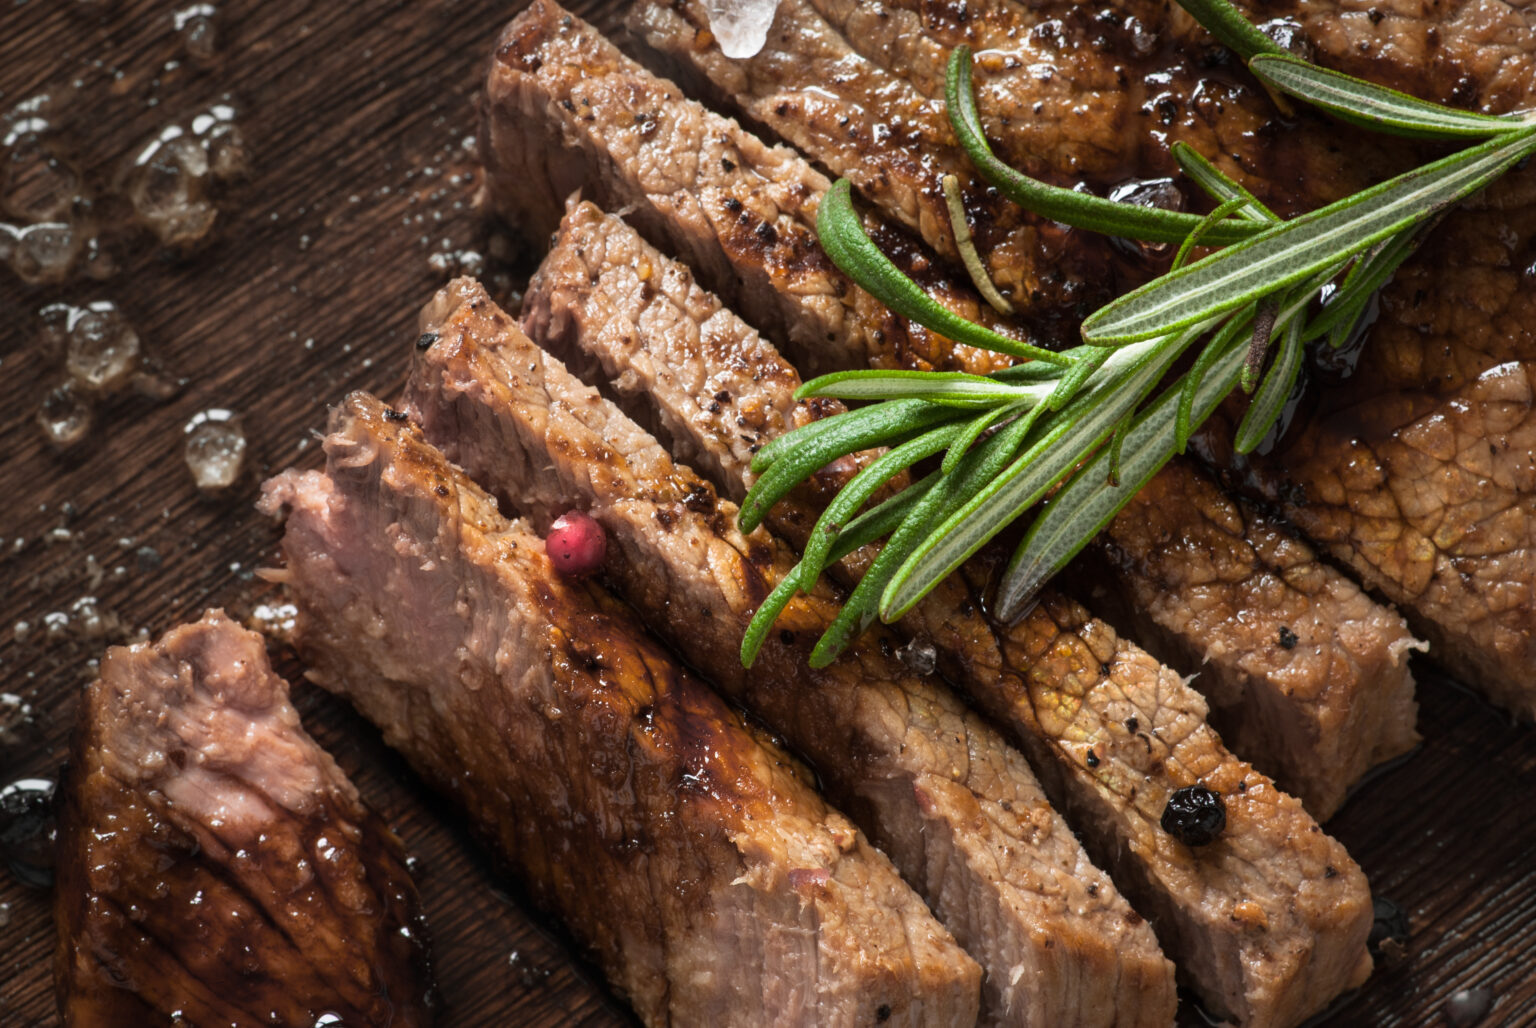 Sliced meat. Grilled beef steak on wooden cutting board. Top view.